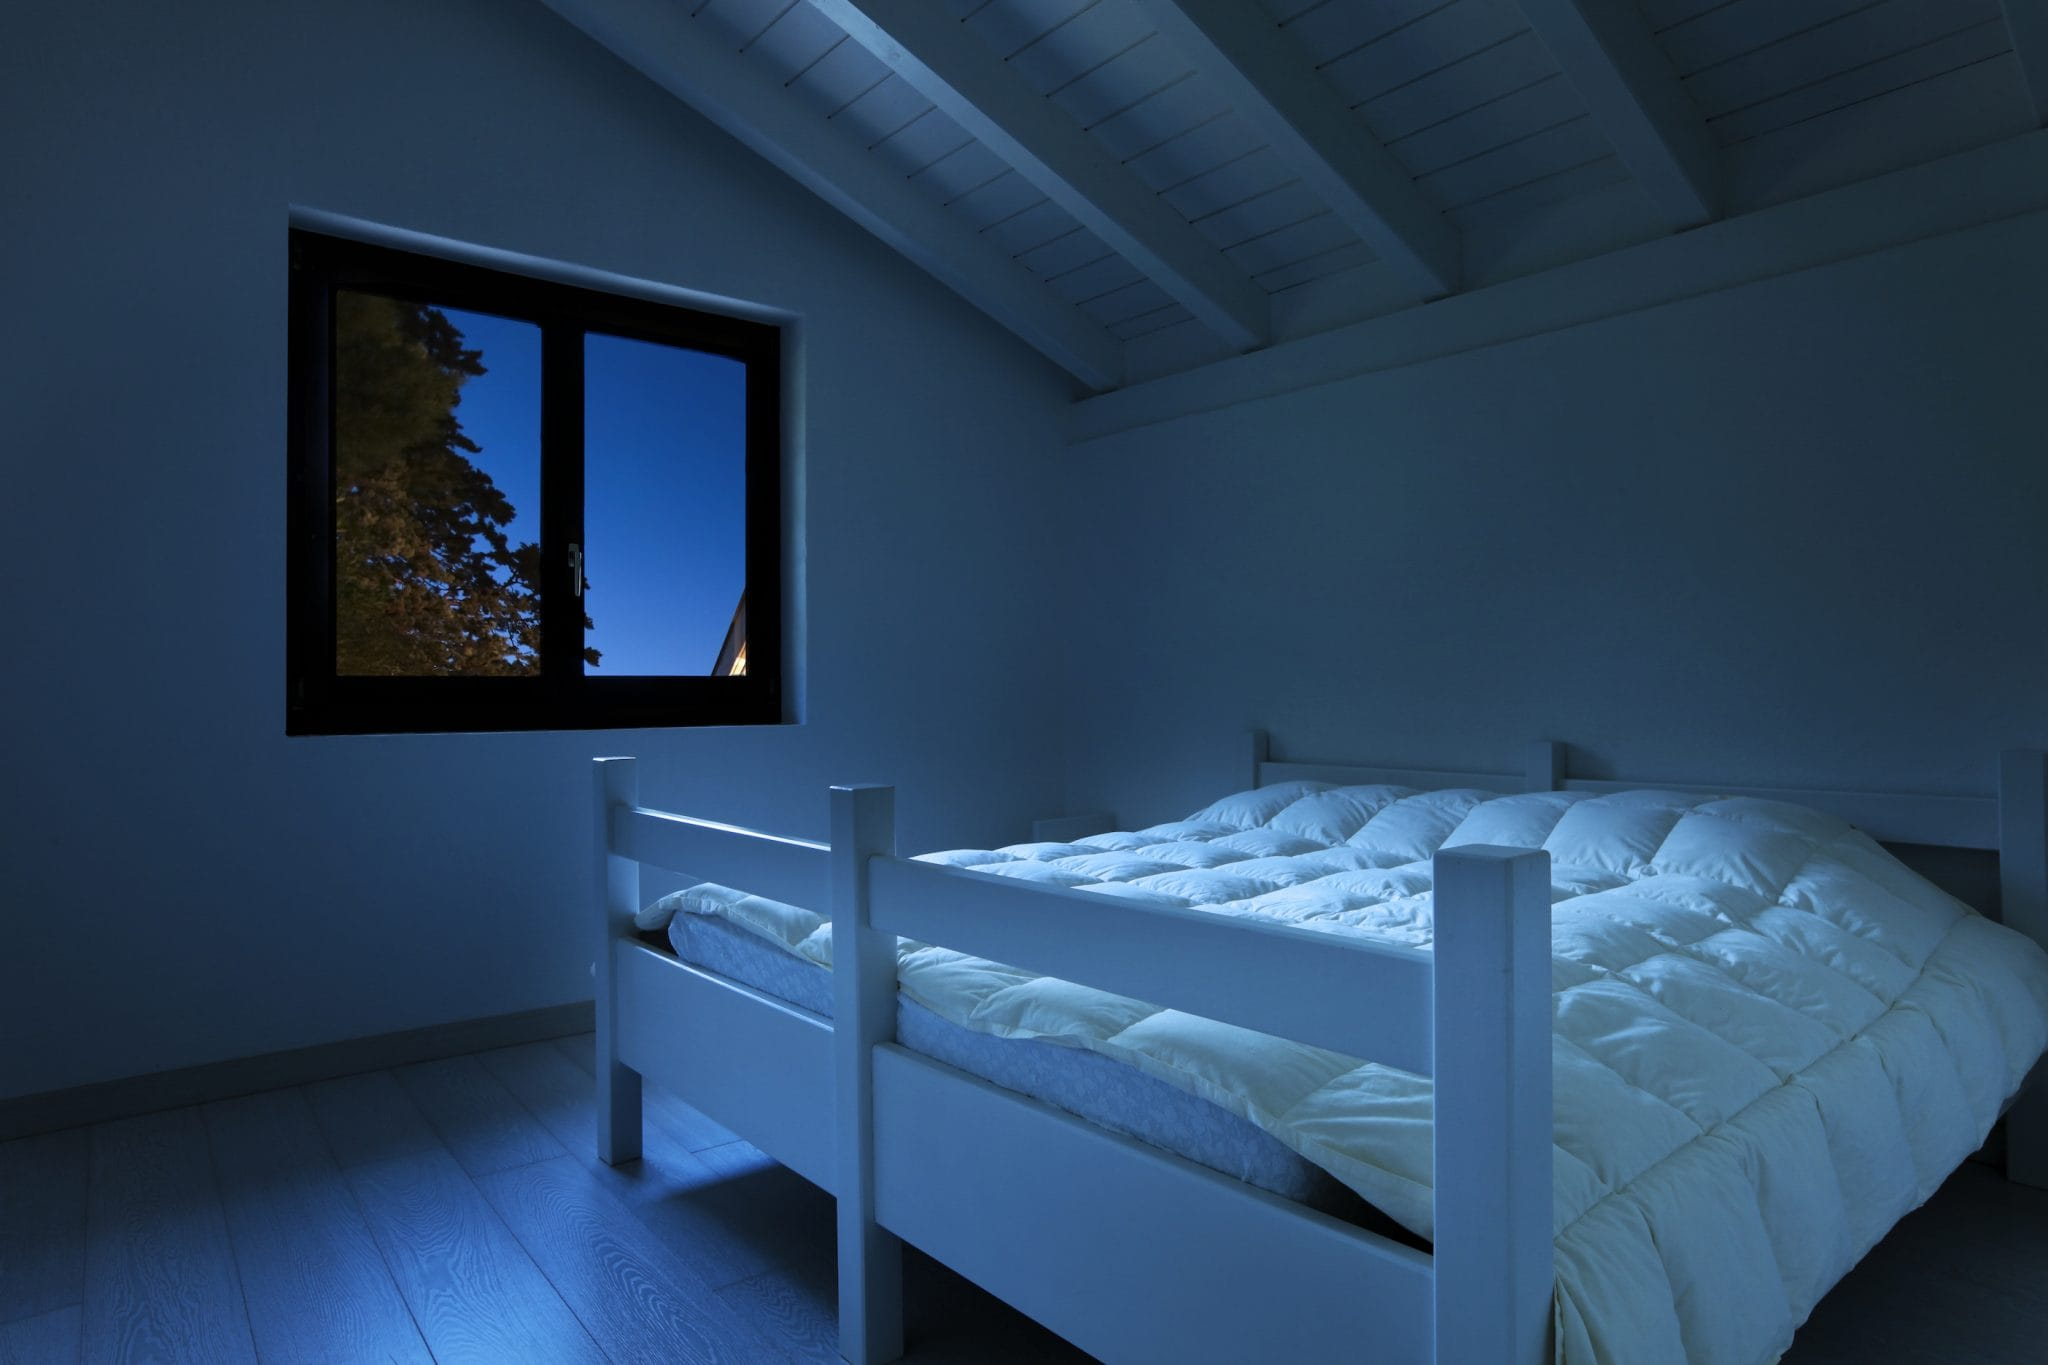 Bedroom Pics How To Darken Your Bedroom For Better Sleep Get Green Be